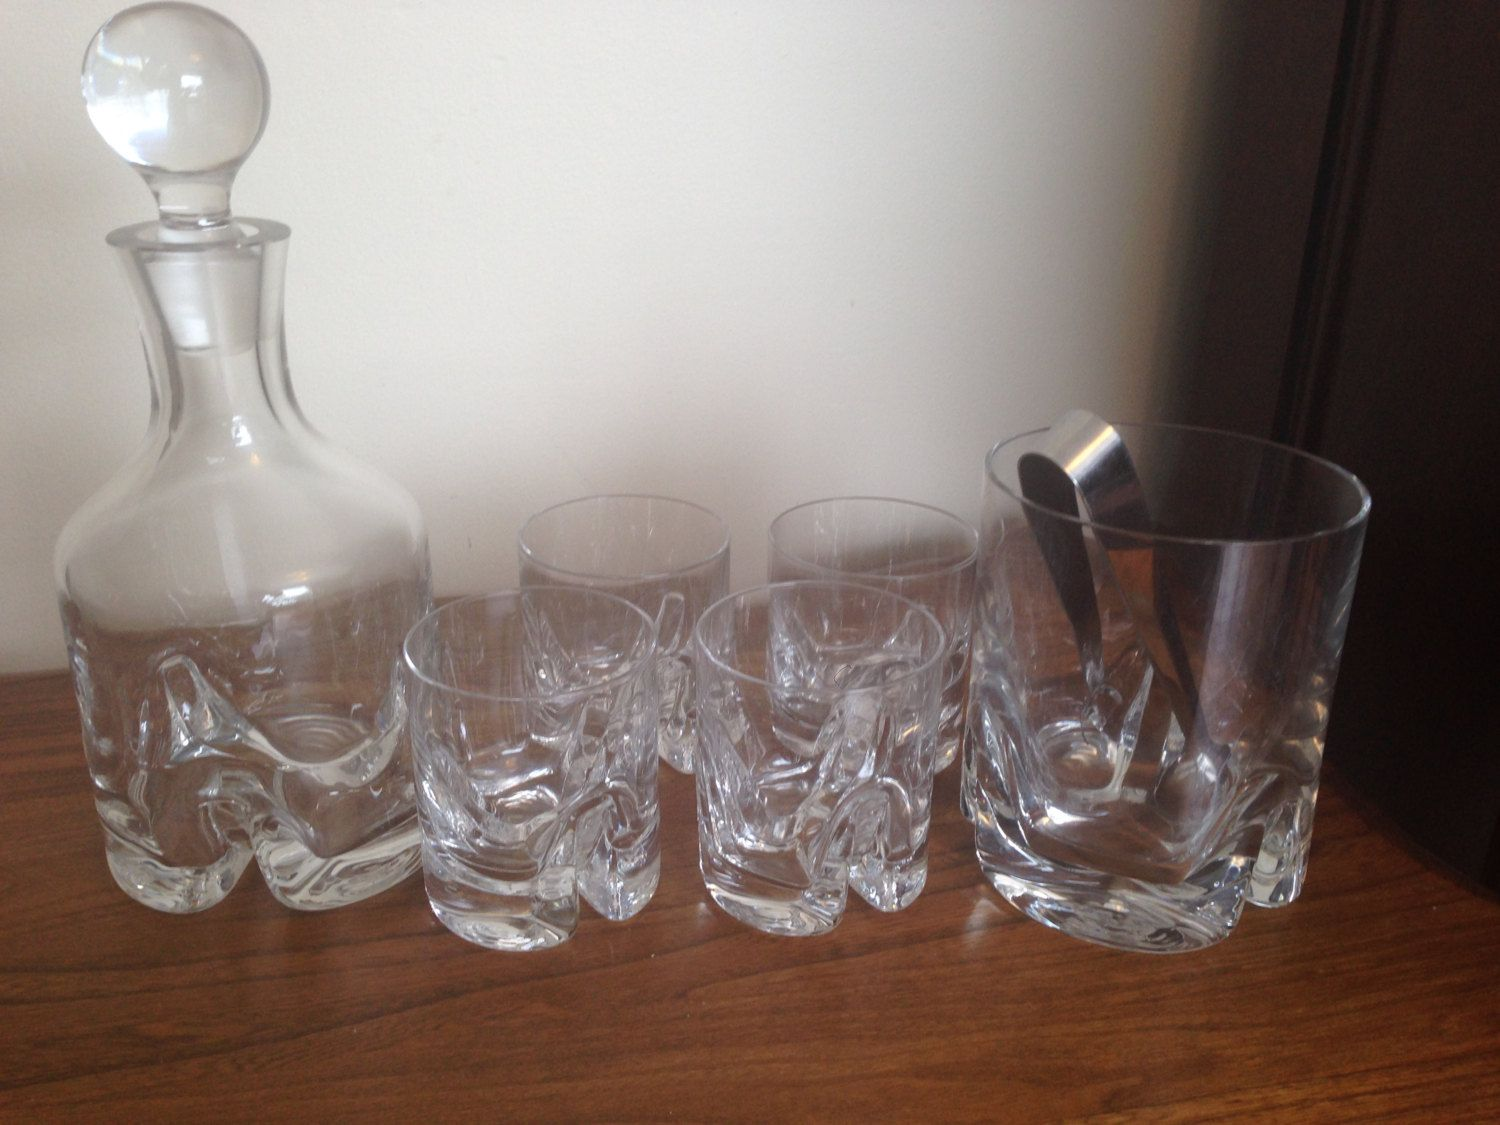 Vintage Krosno Crystal Glass Industries Barware Set By ChrisTineDecor On  Etsy